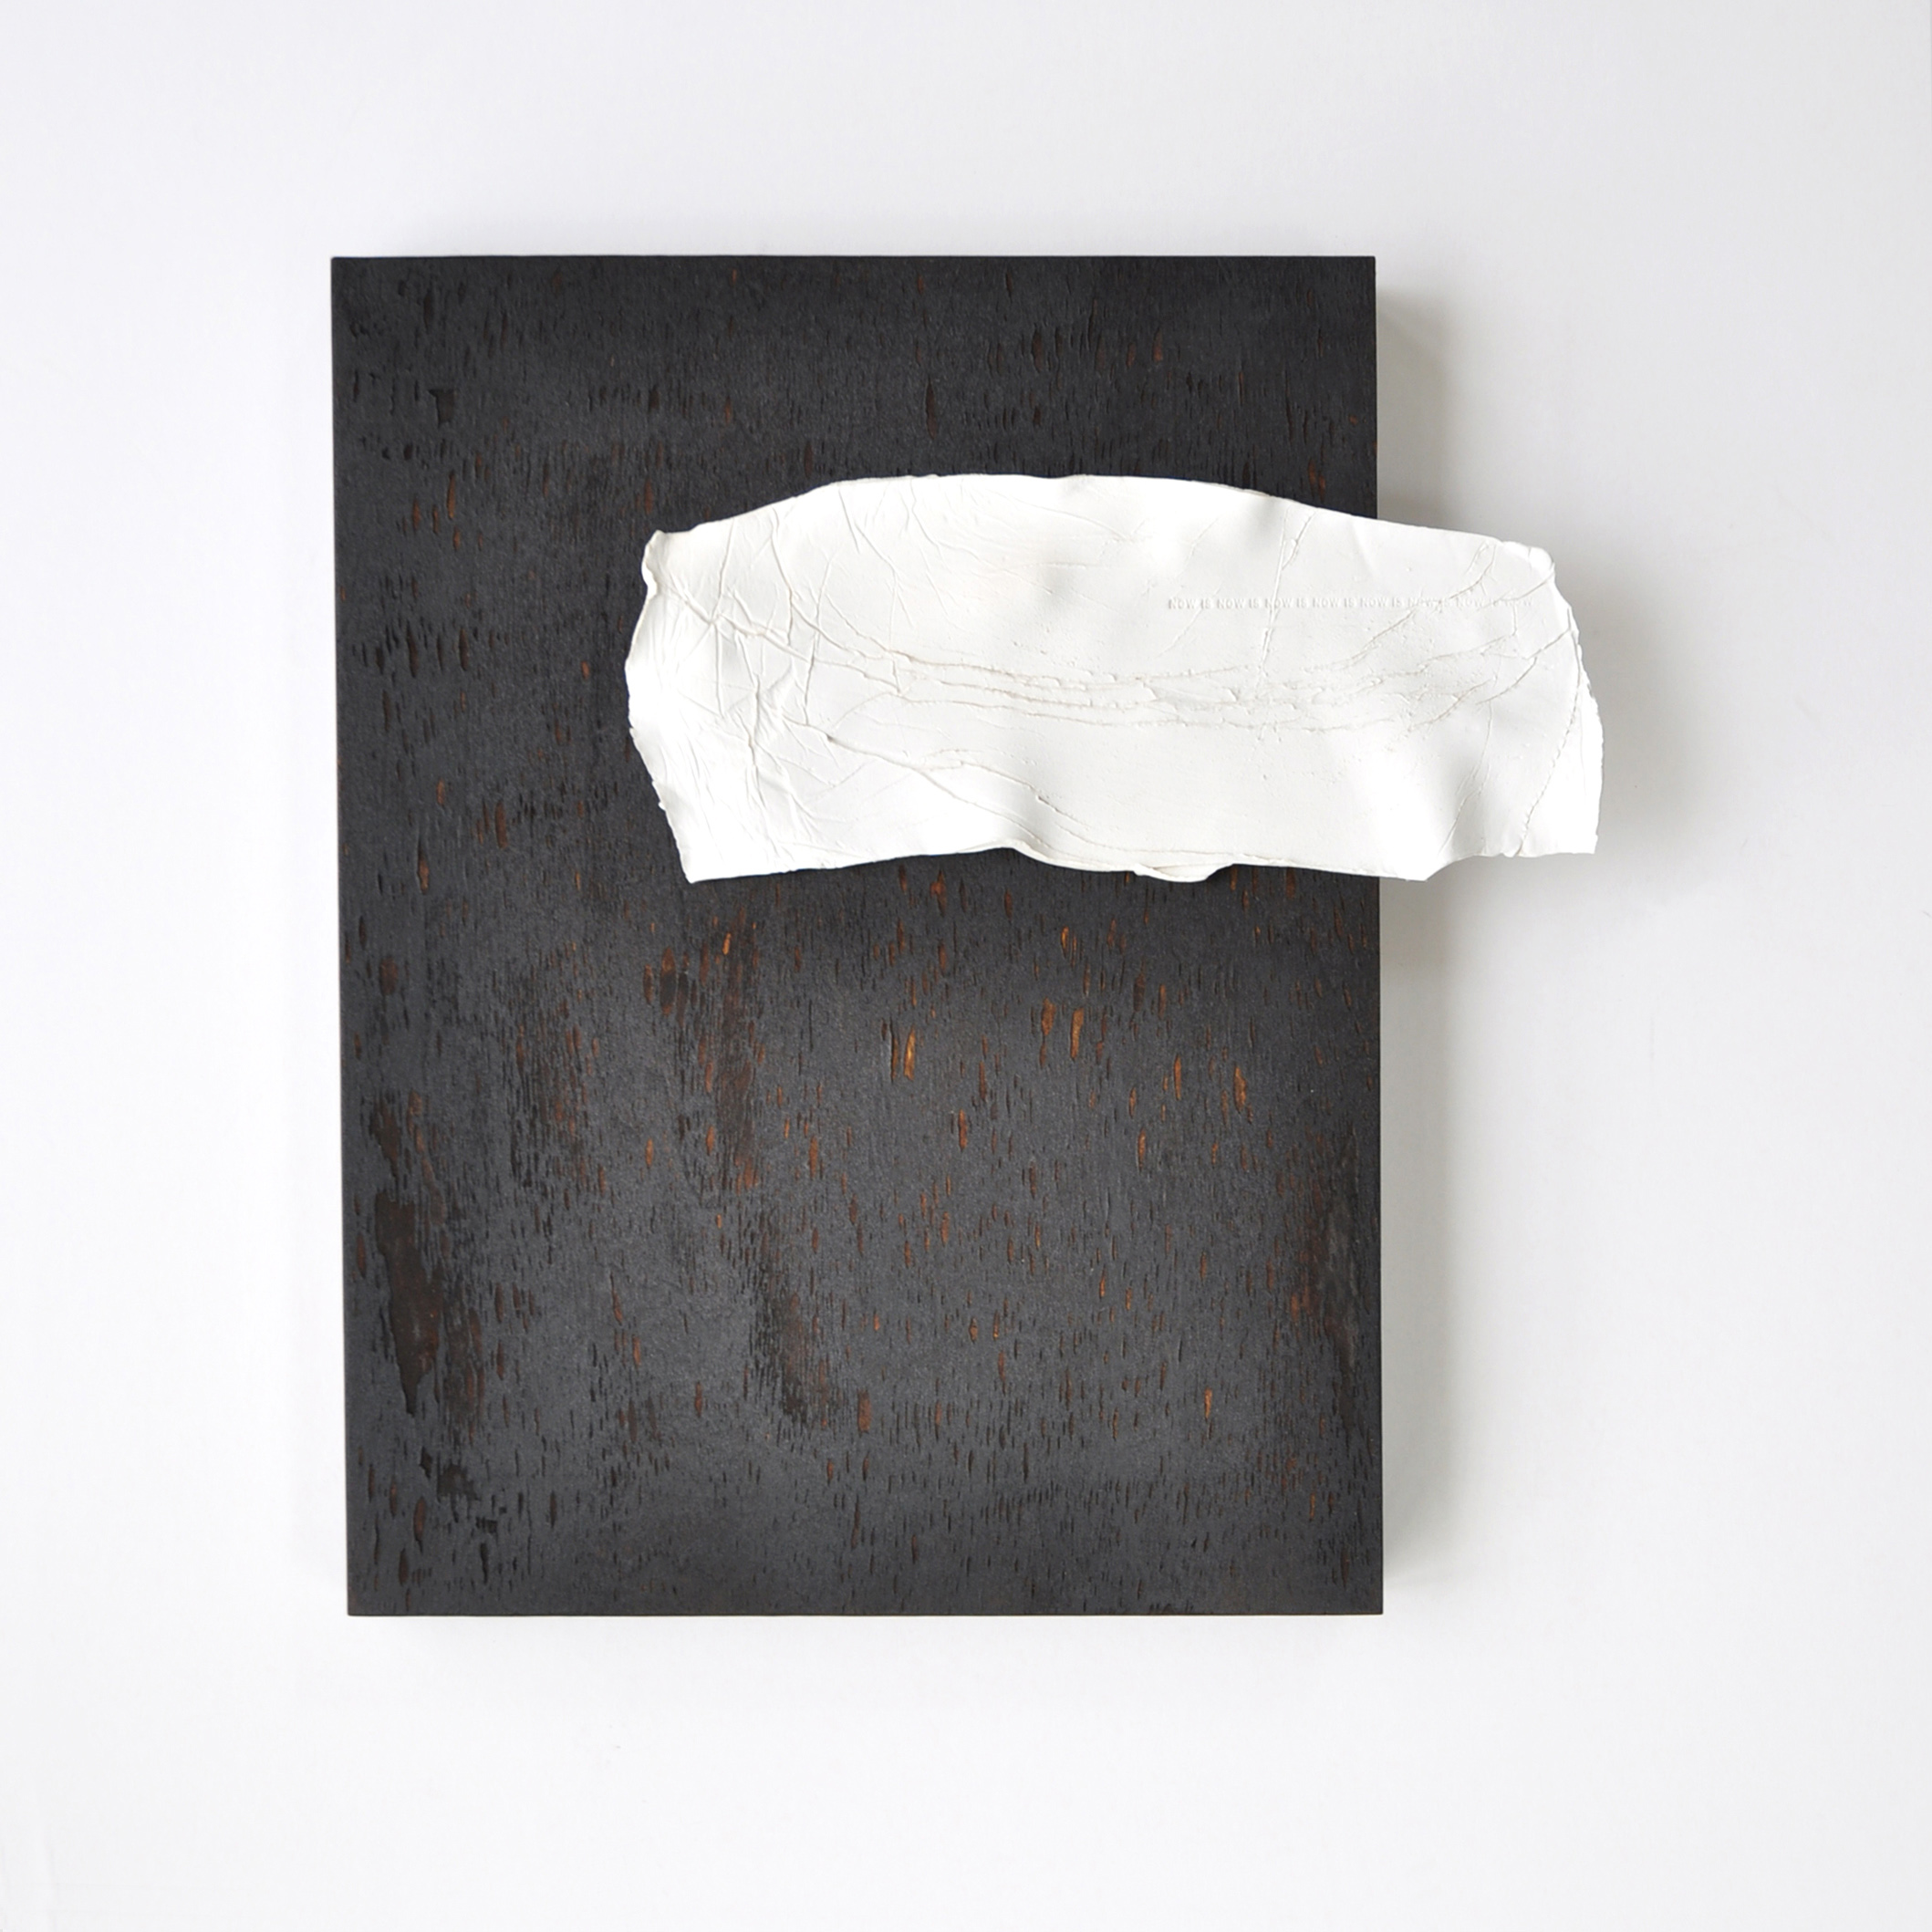 Fleeting, 2019, Stoneware, acrylic paint & charred wood panel, 14 x 14, $1,200